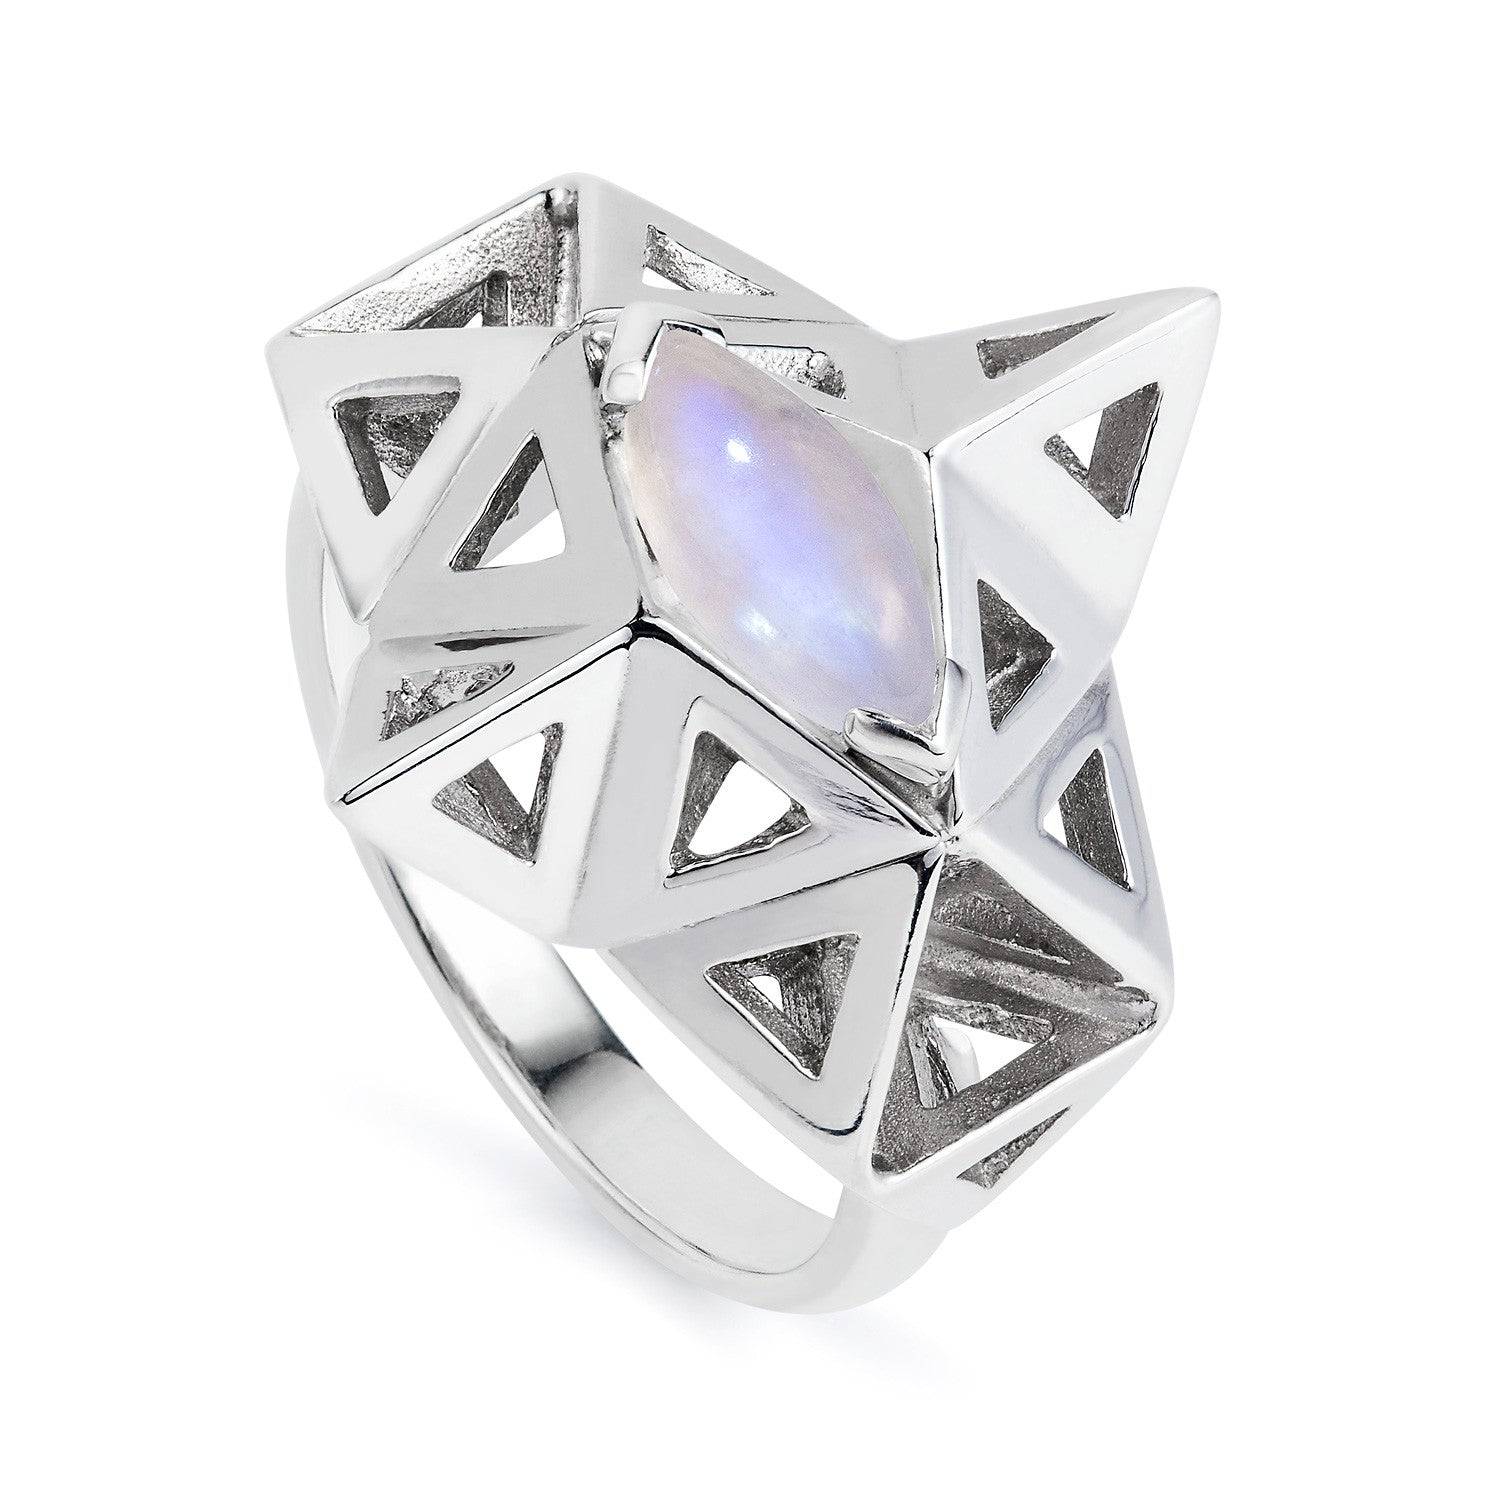 Large Prism Moonstone Ring-Rings-London Rocks Jewellery